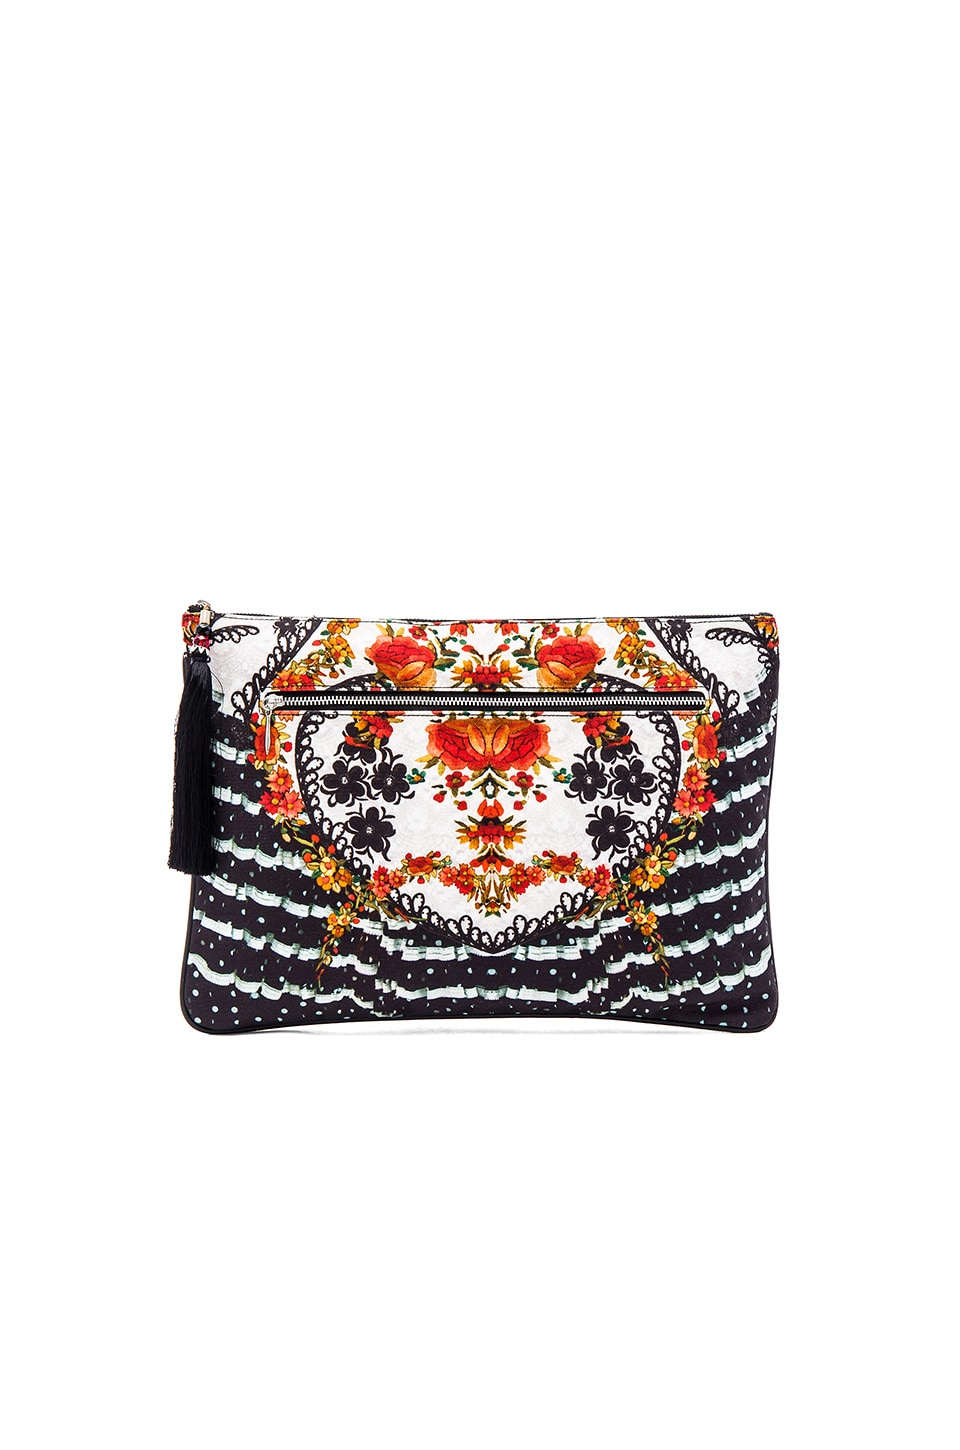 Camilla Large Canvas Clutch in La Rosa